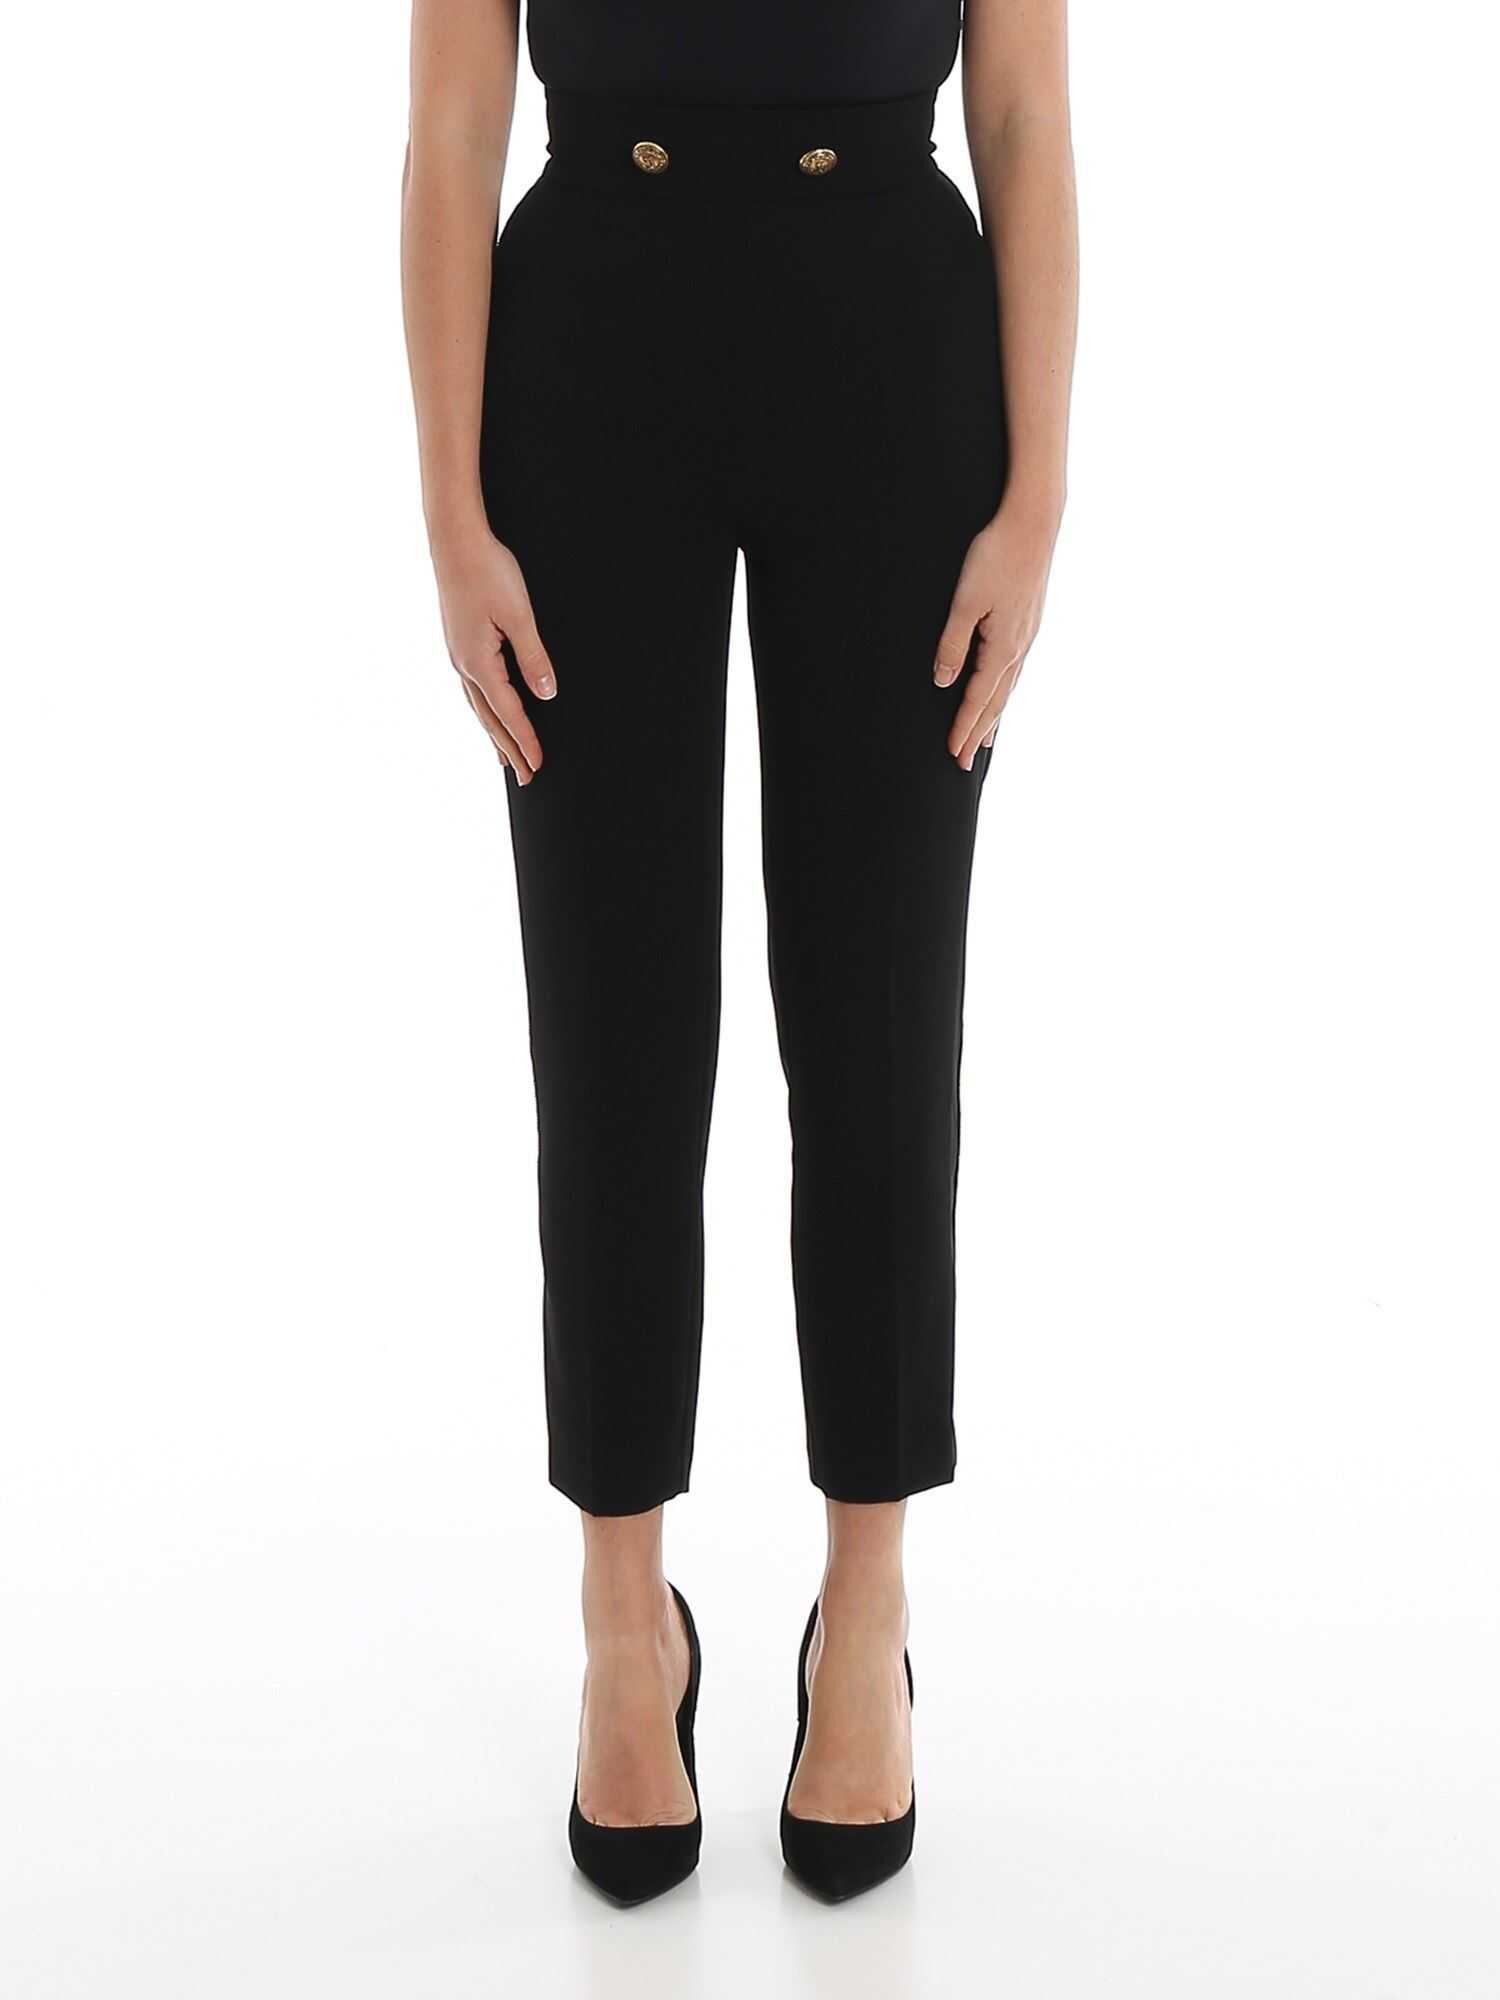 Elisabetta Franchi Fluid Crepe Black Trousers Black